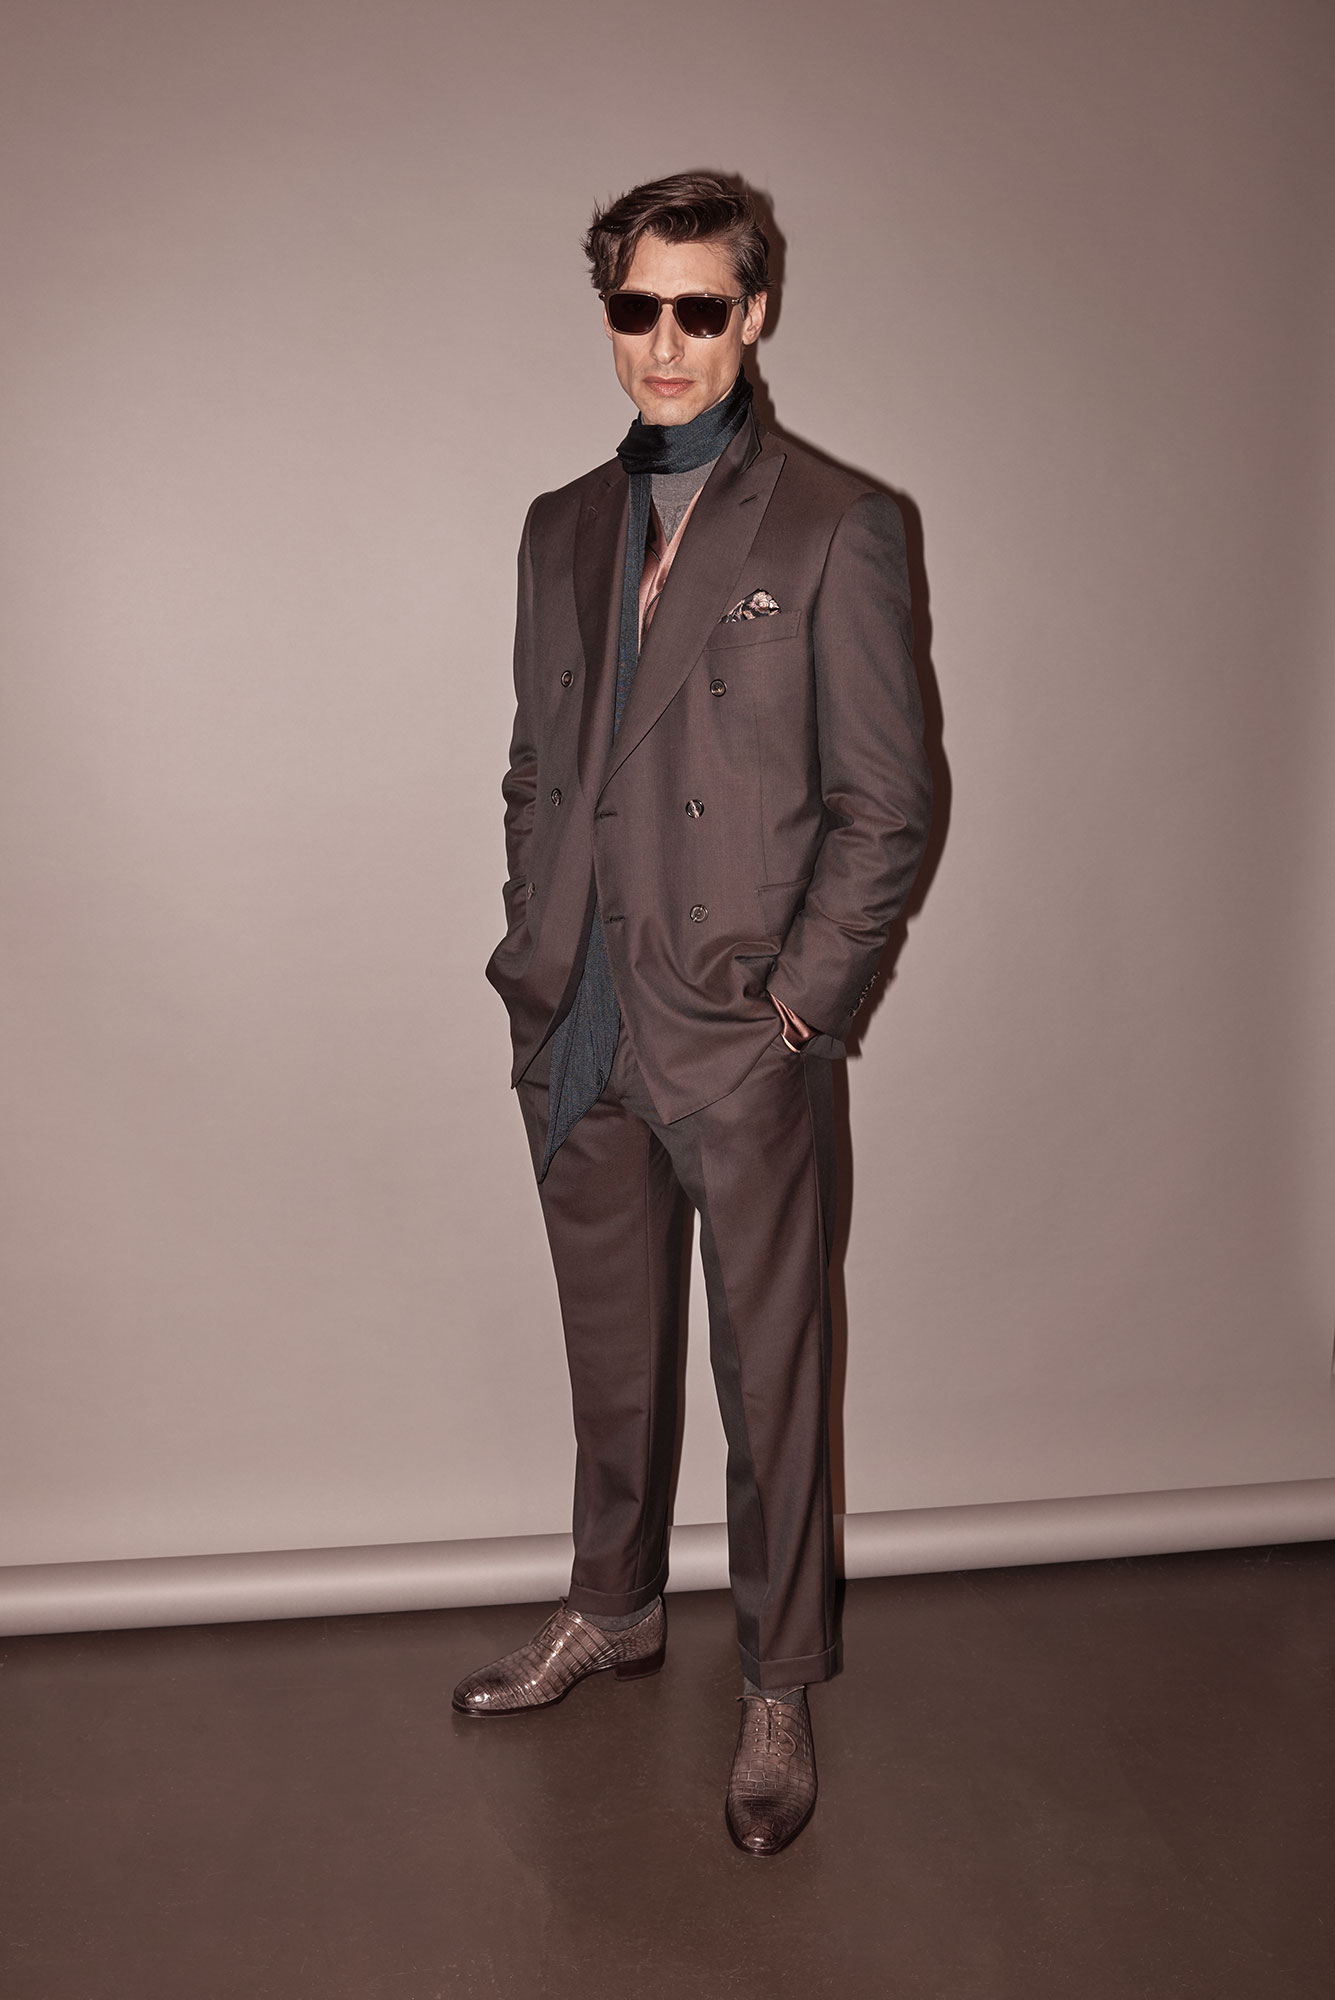 Brioni Fall 2019 | Marco Pietracupa | Brioni | Numerique Retouch Photo Retouching Studio